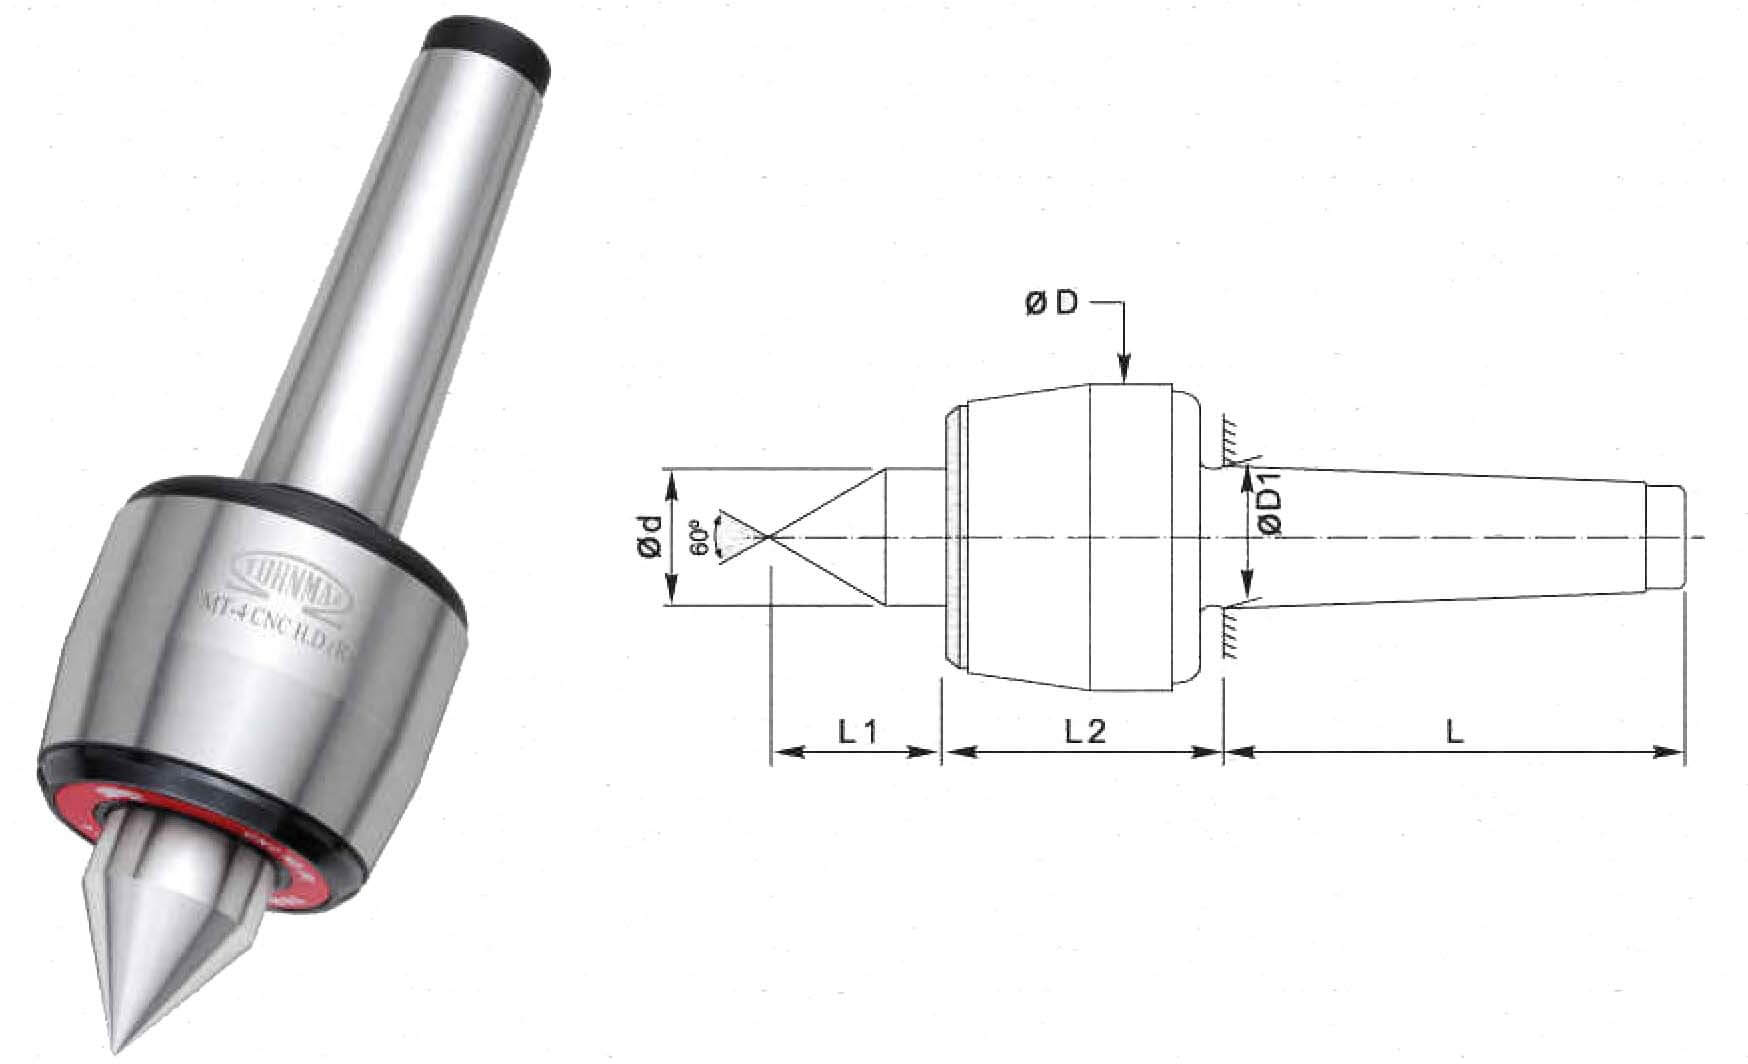 CNC Heavy Duty R Model MT6 Stub Point Revolving Center For High Speed Applications as in CNC Turning Lathes